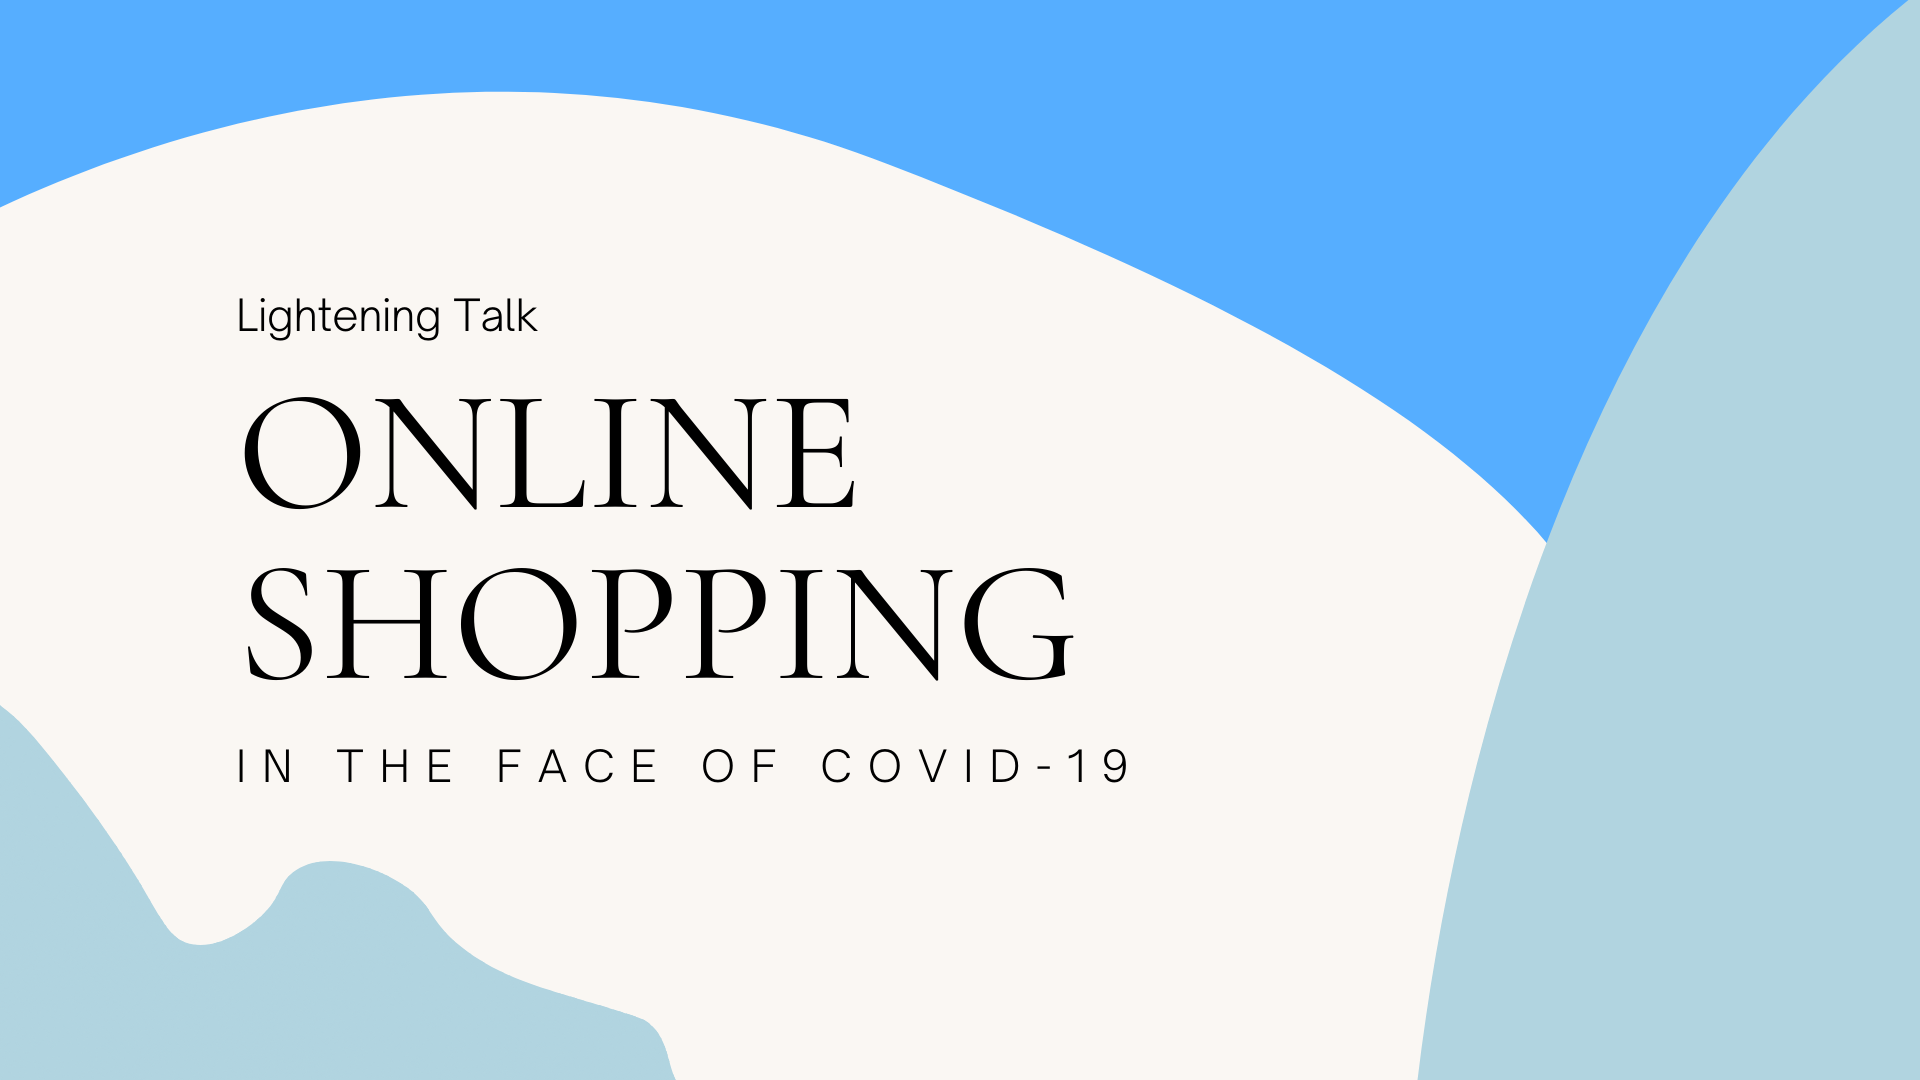 Online Shopping in the Face of COVID-19